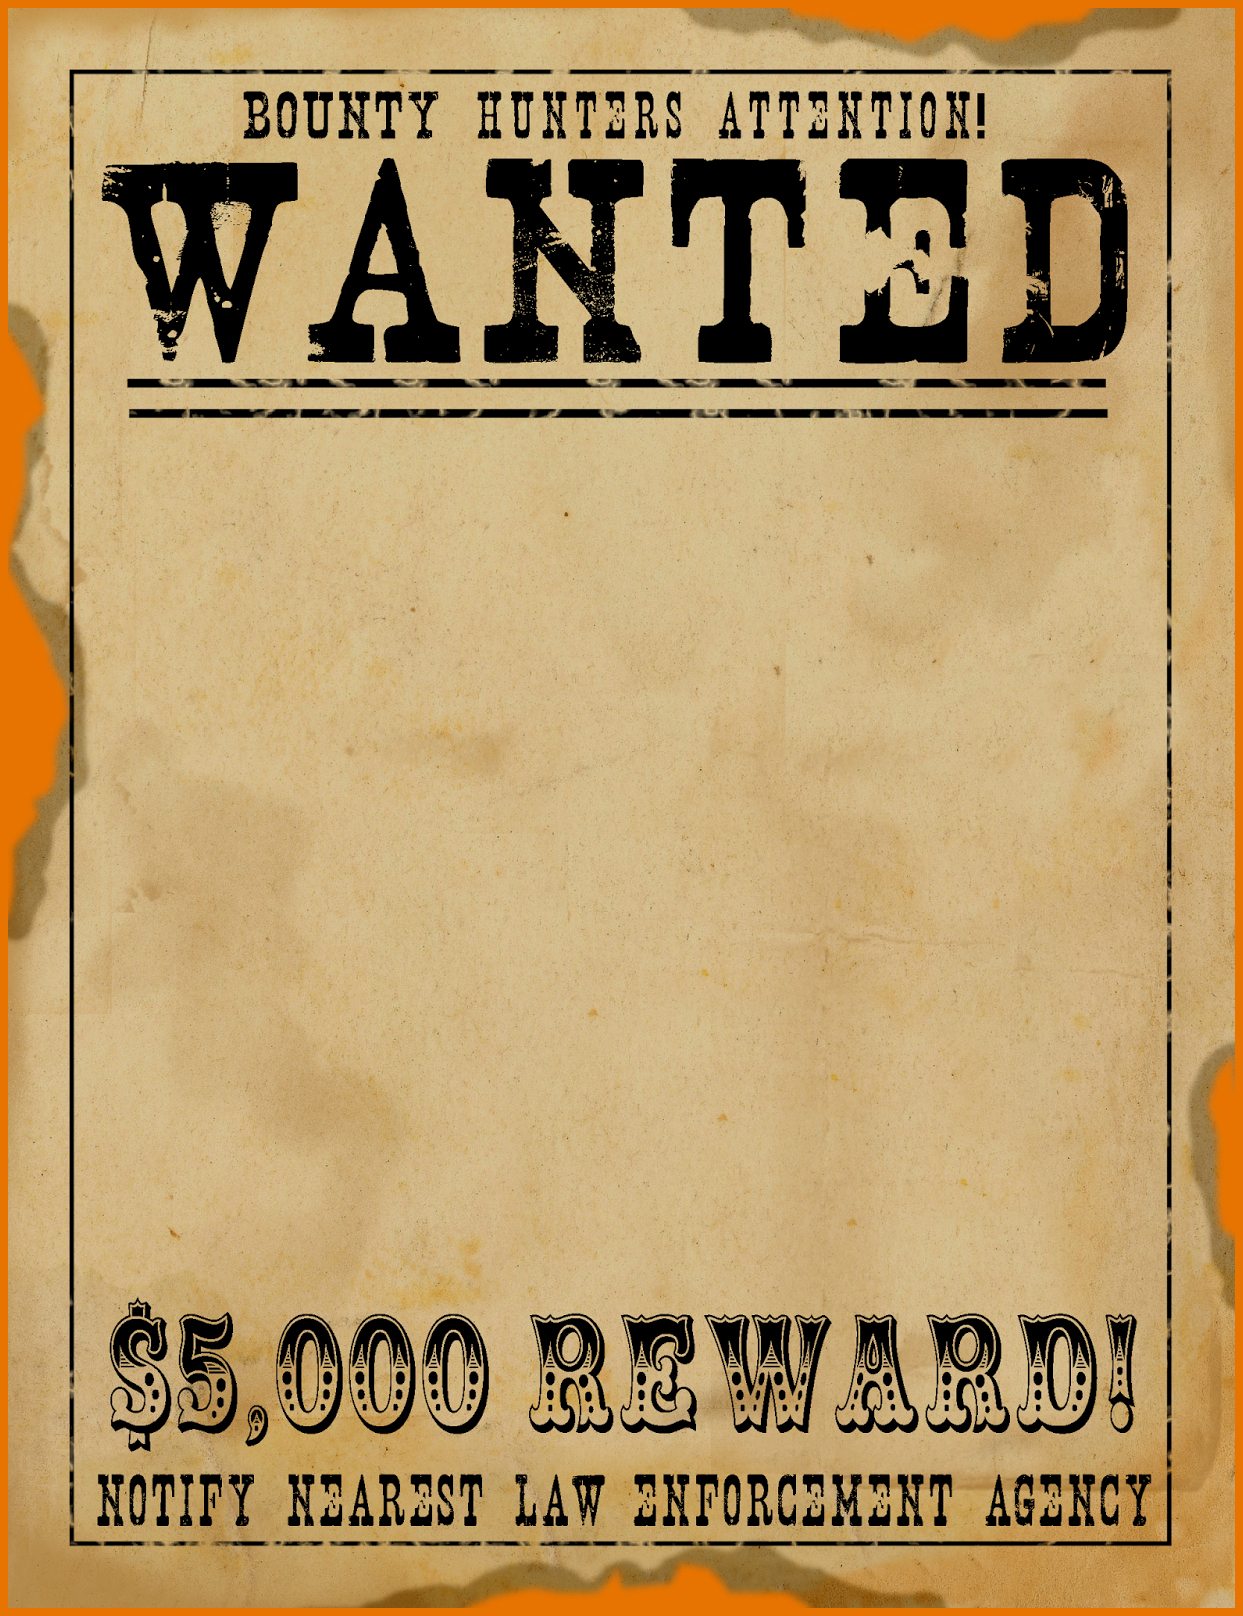 Making Wanted Posters - Demir.iso-Consulting.co - Wanted Poster Printable Free